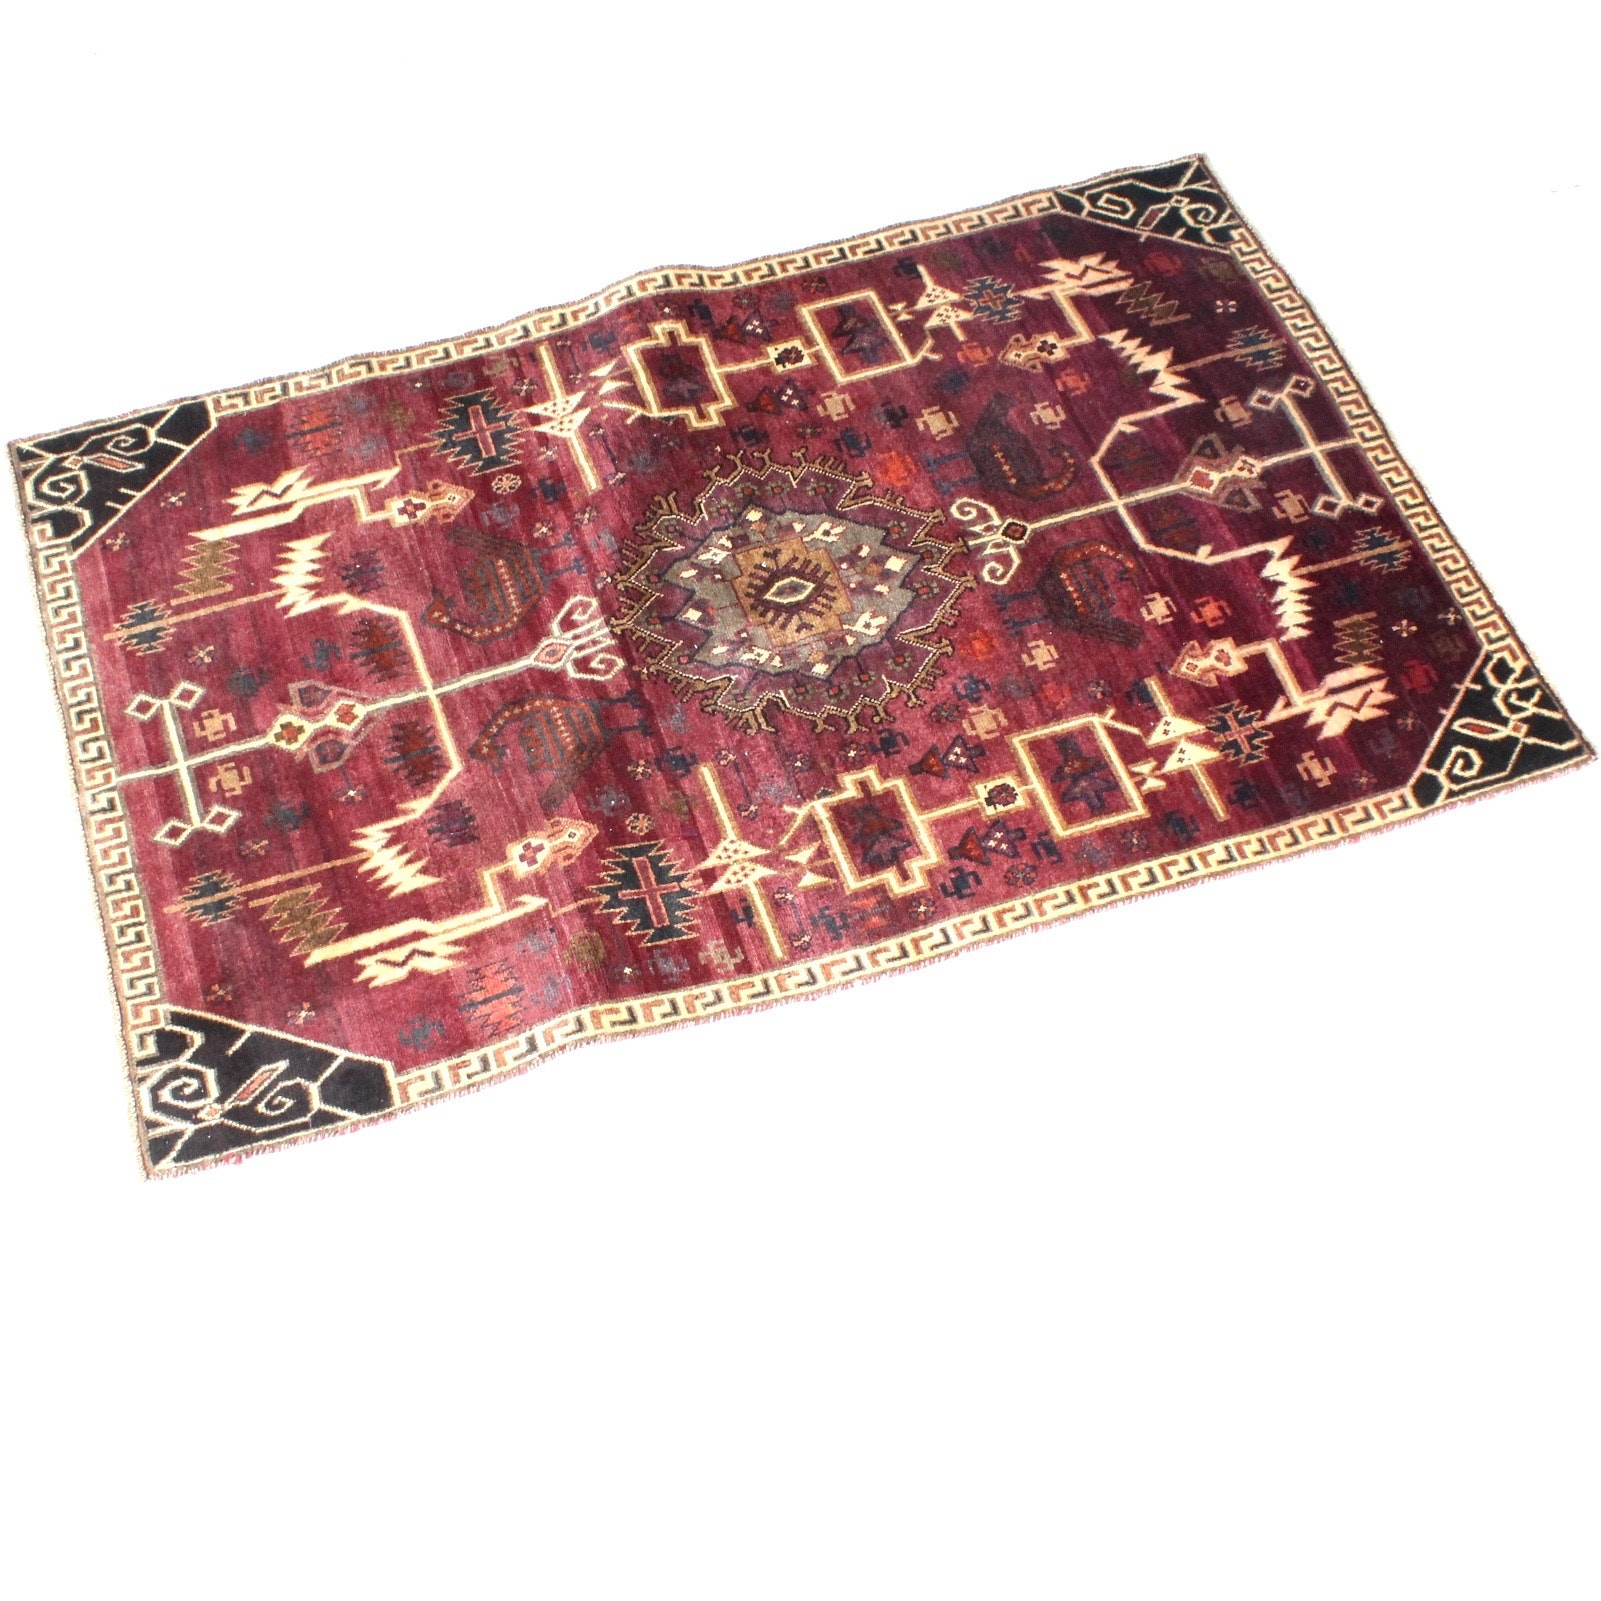 Vintage Hand-Knotted Persian Qashqai Area Rug